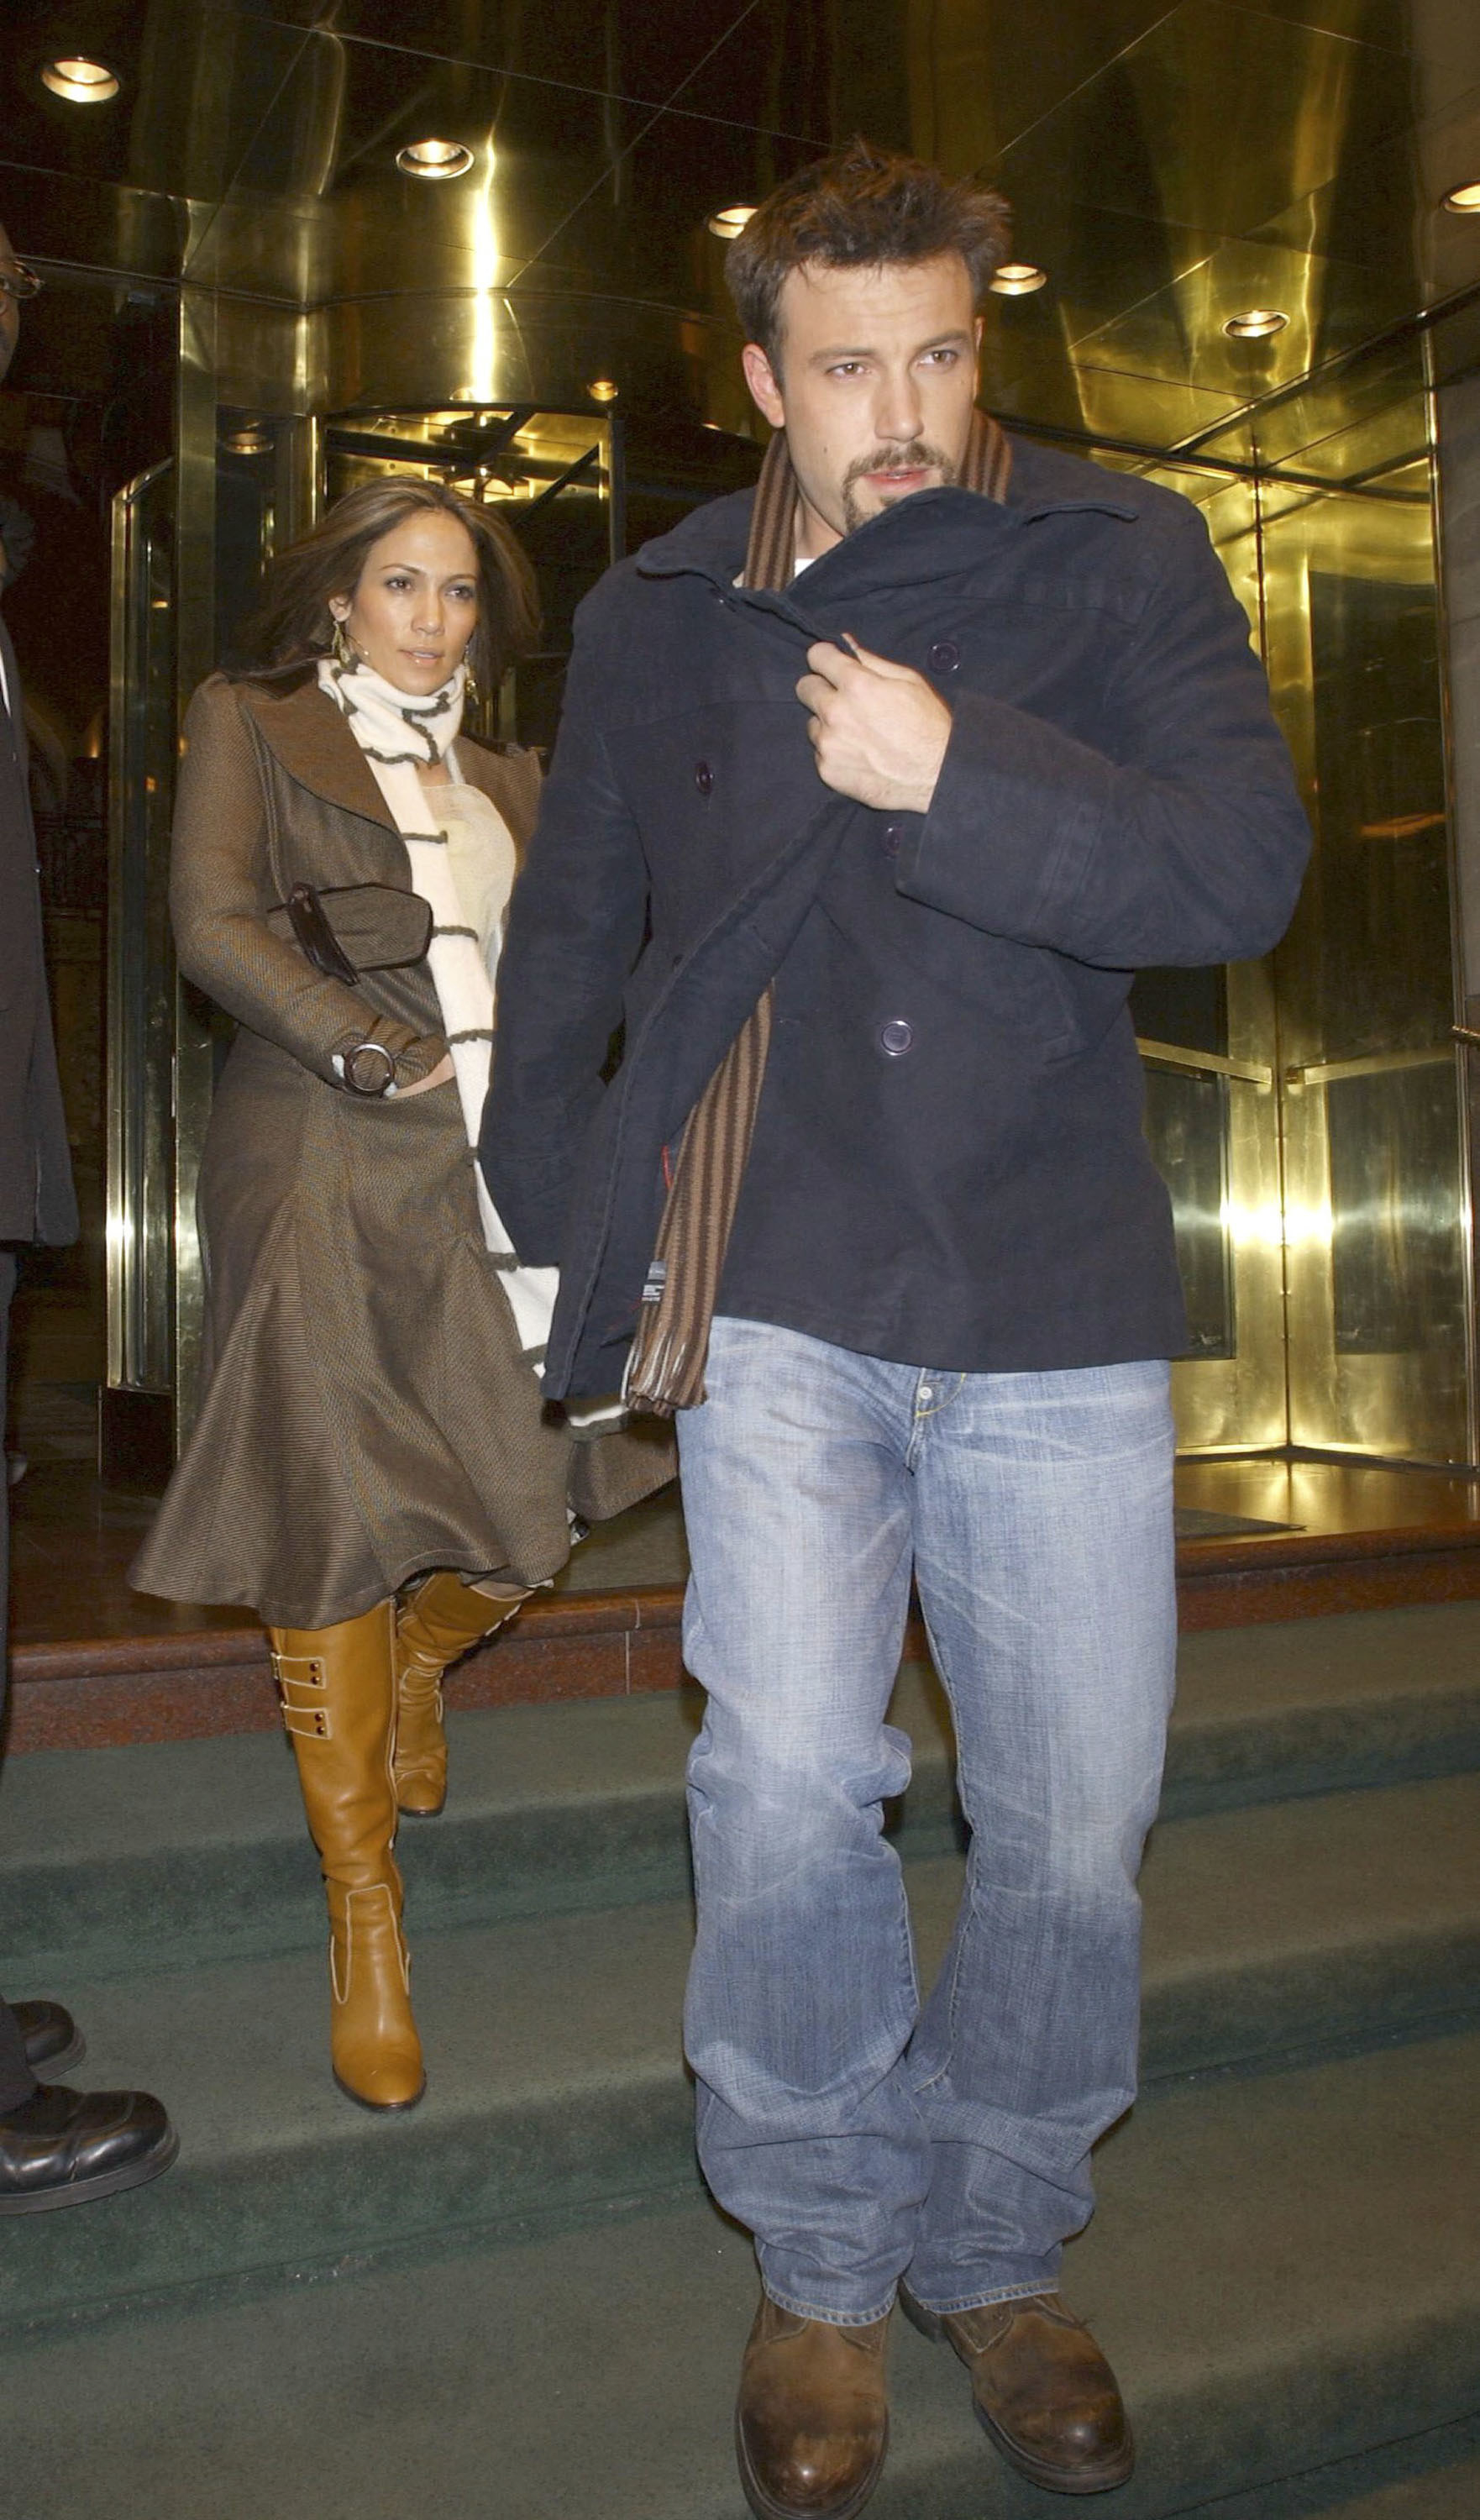 Ben Affleck and Jennifer Lopez in NYC